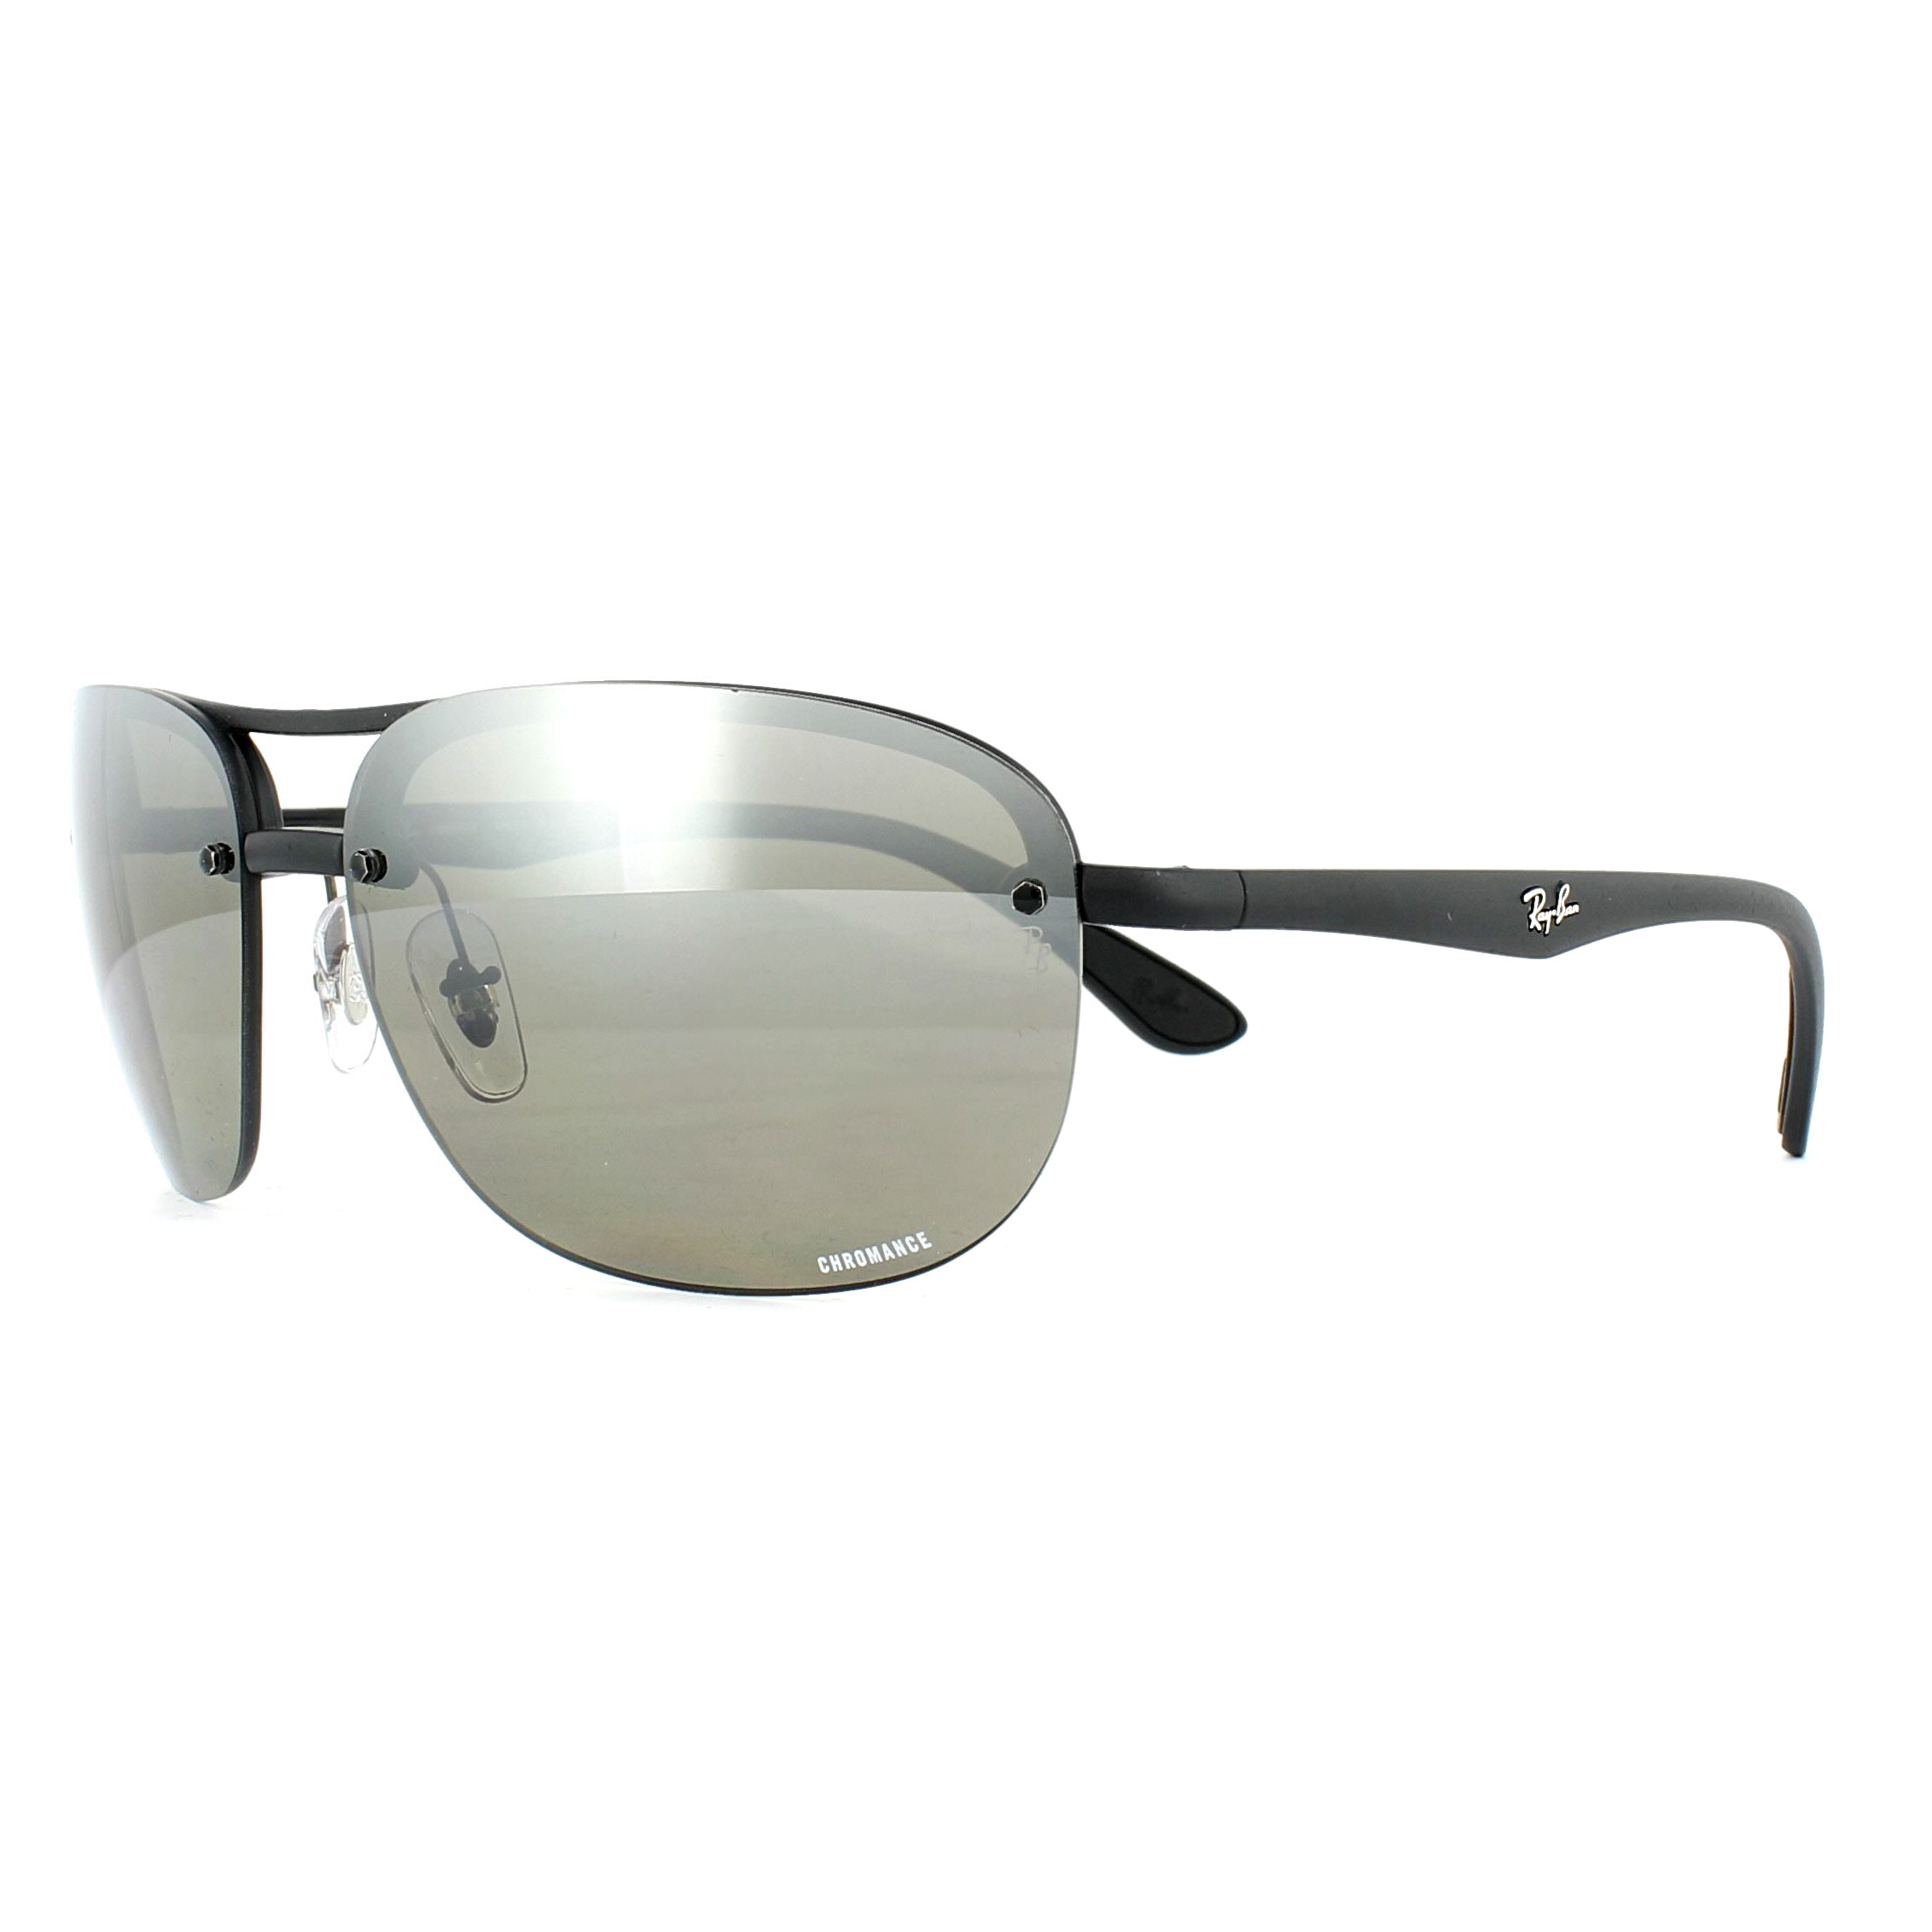 ca45280ace3 Sentinel Ray-Ban Sunglasses RB4275CH 601S5J Black Silver Mirror Polarized  Chromance